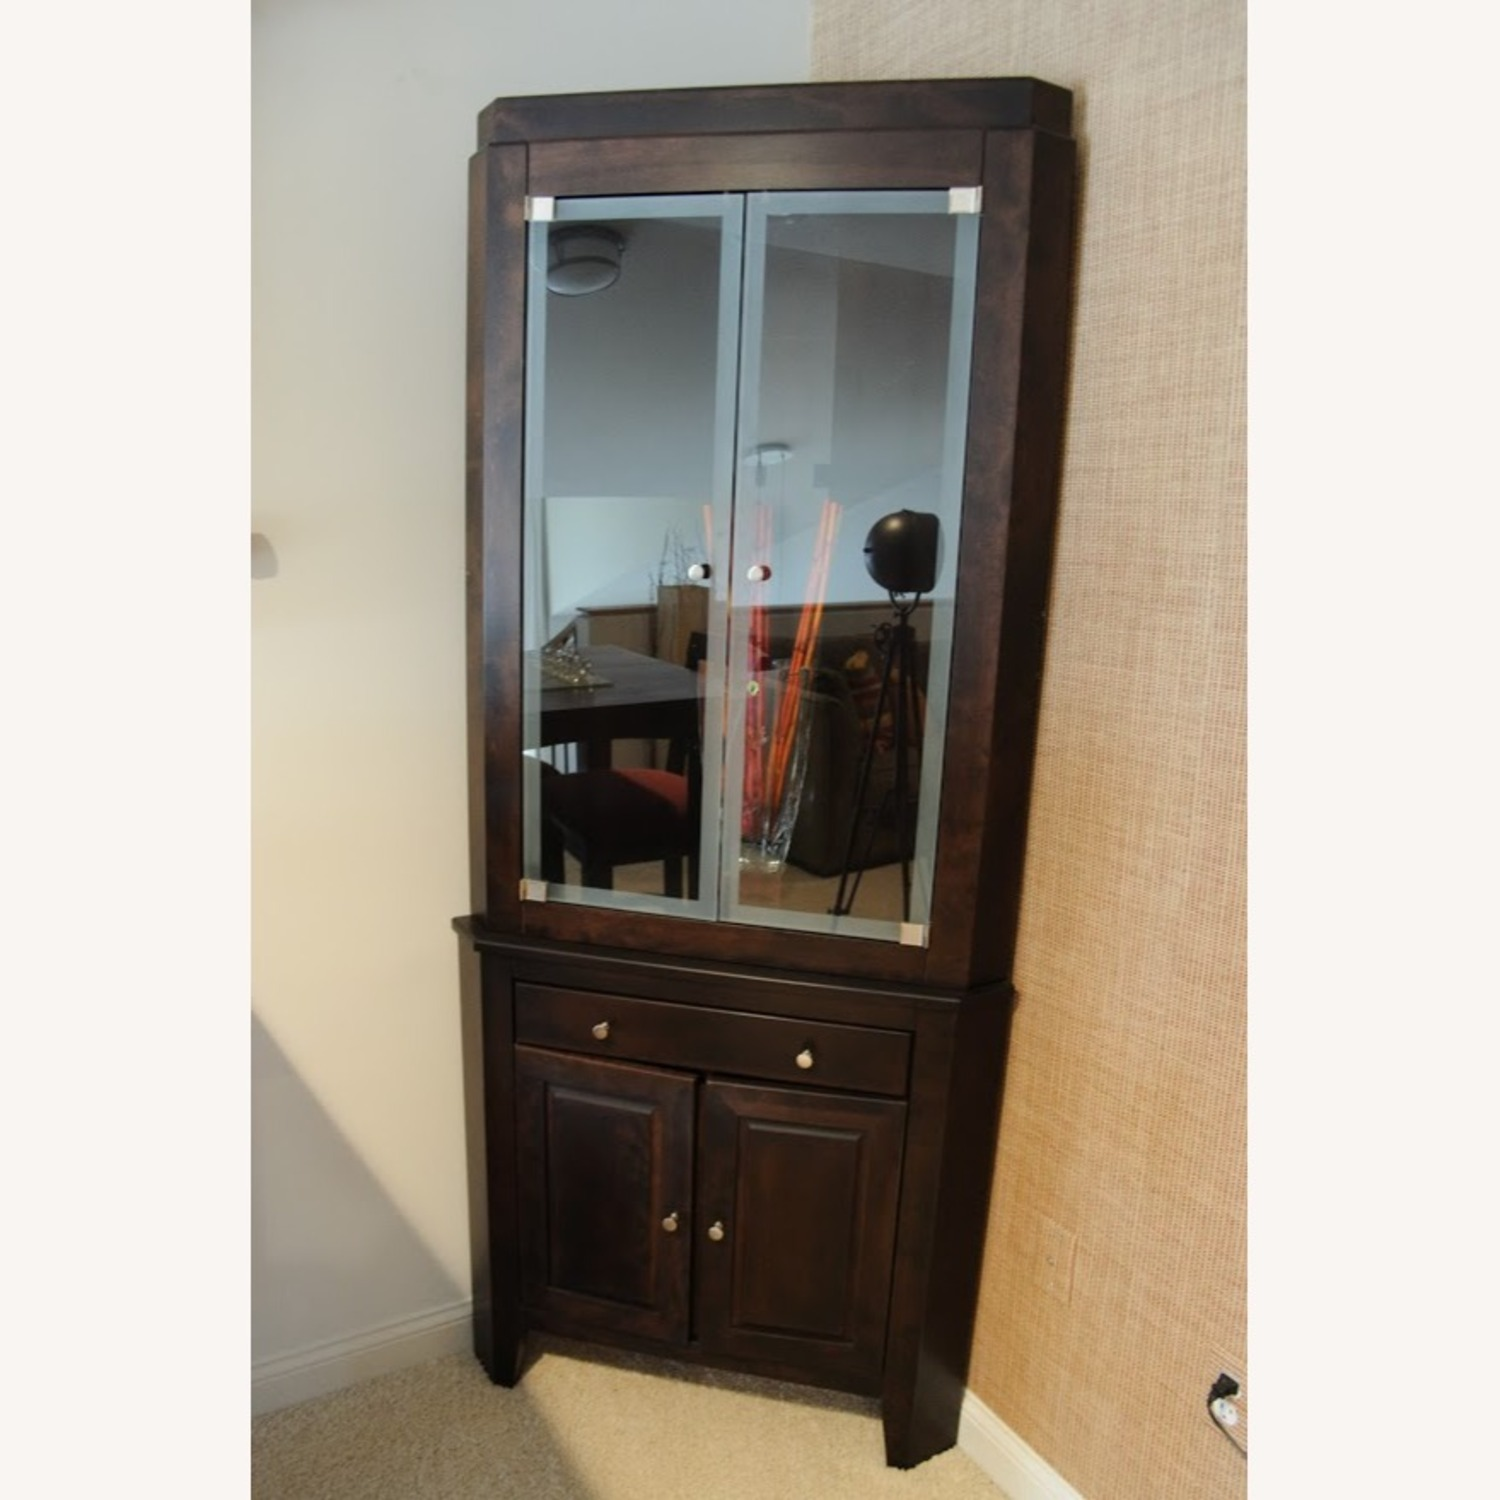 Canadel Corner Curio Cabinet with Light - image-2